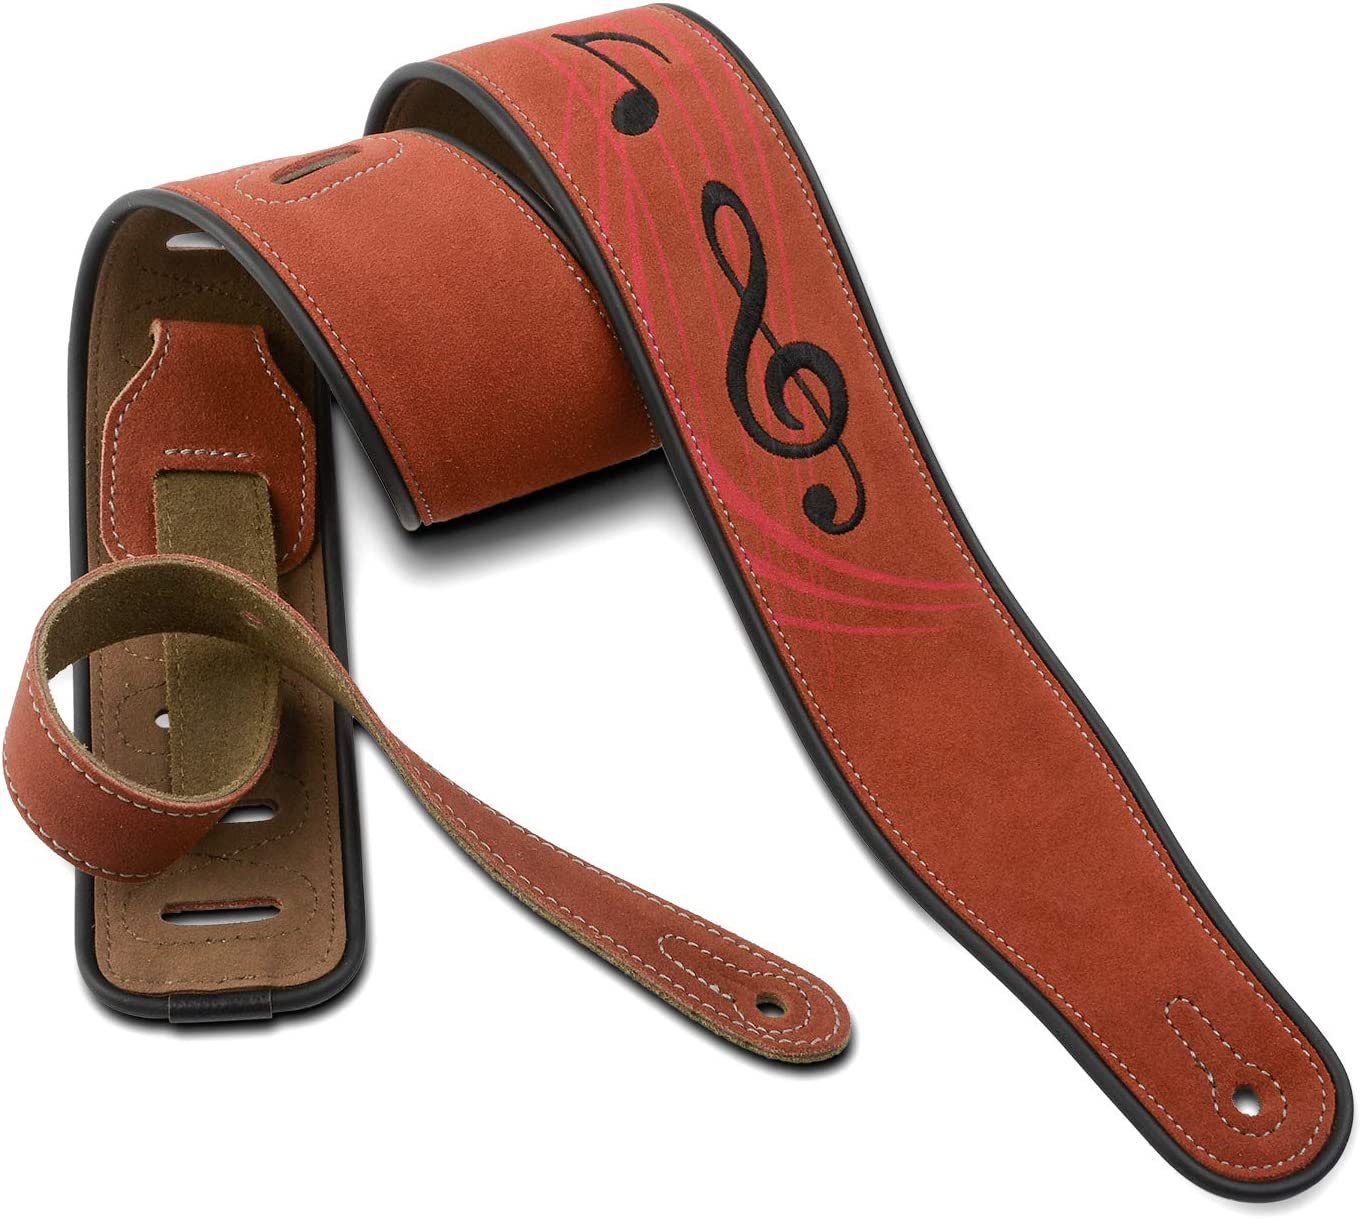 Dulphee Leather Guitar Strap, 2.8 Inches Width Suede Guitar Strap for Bass